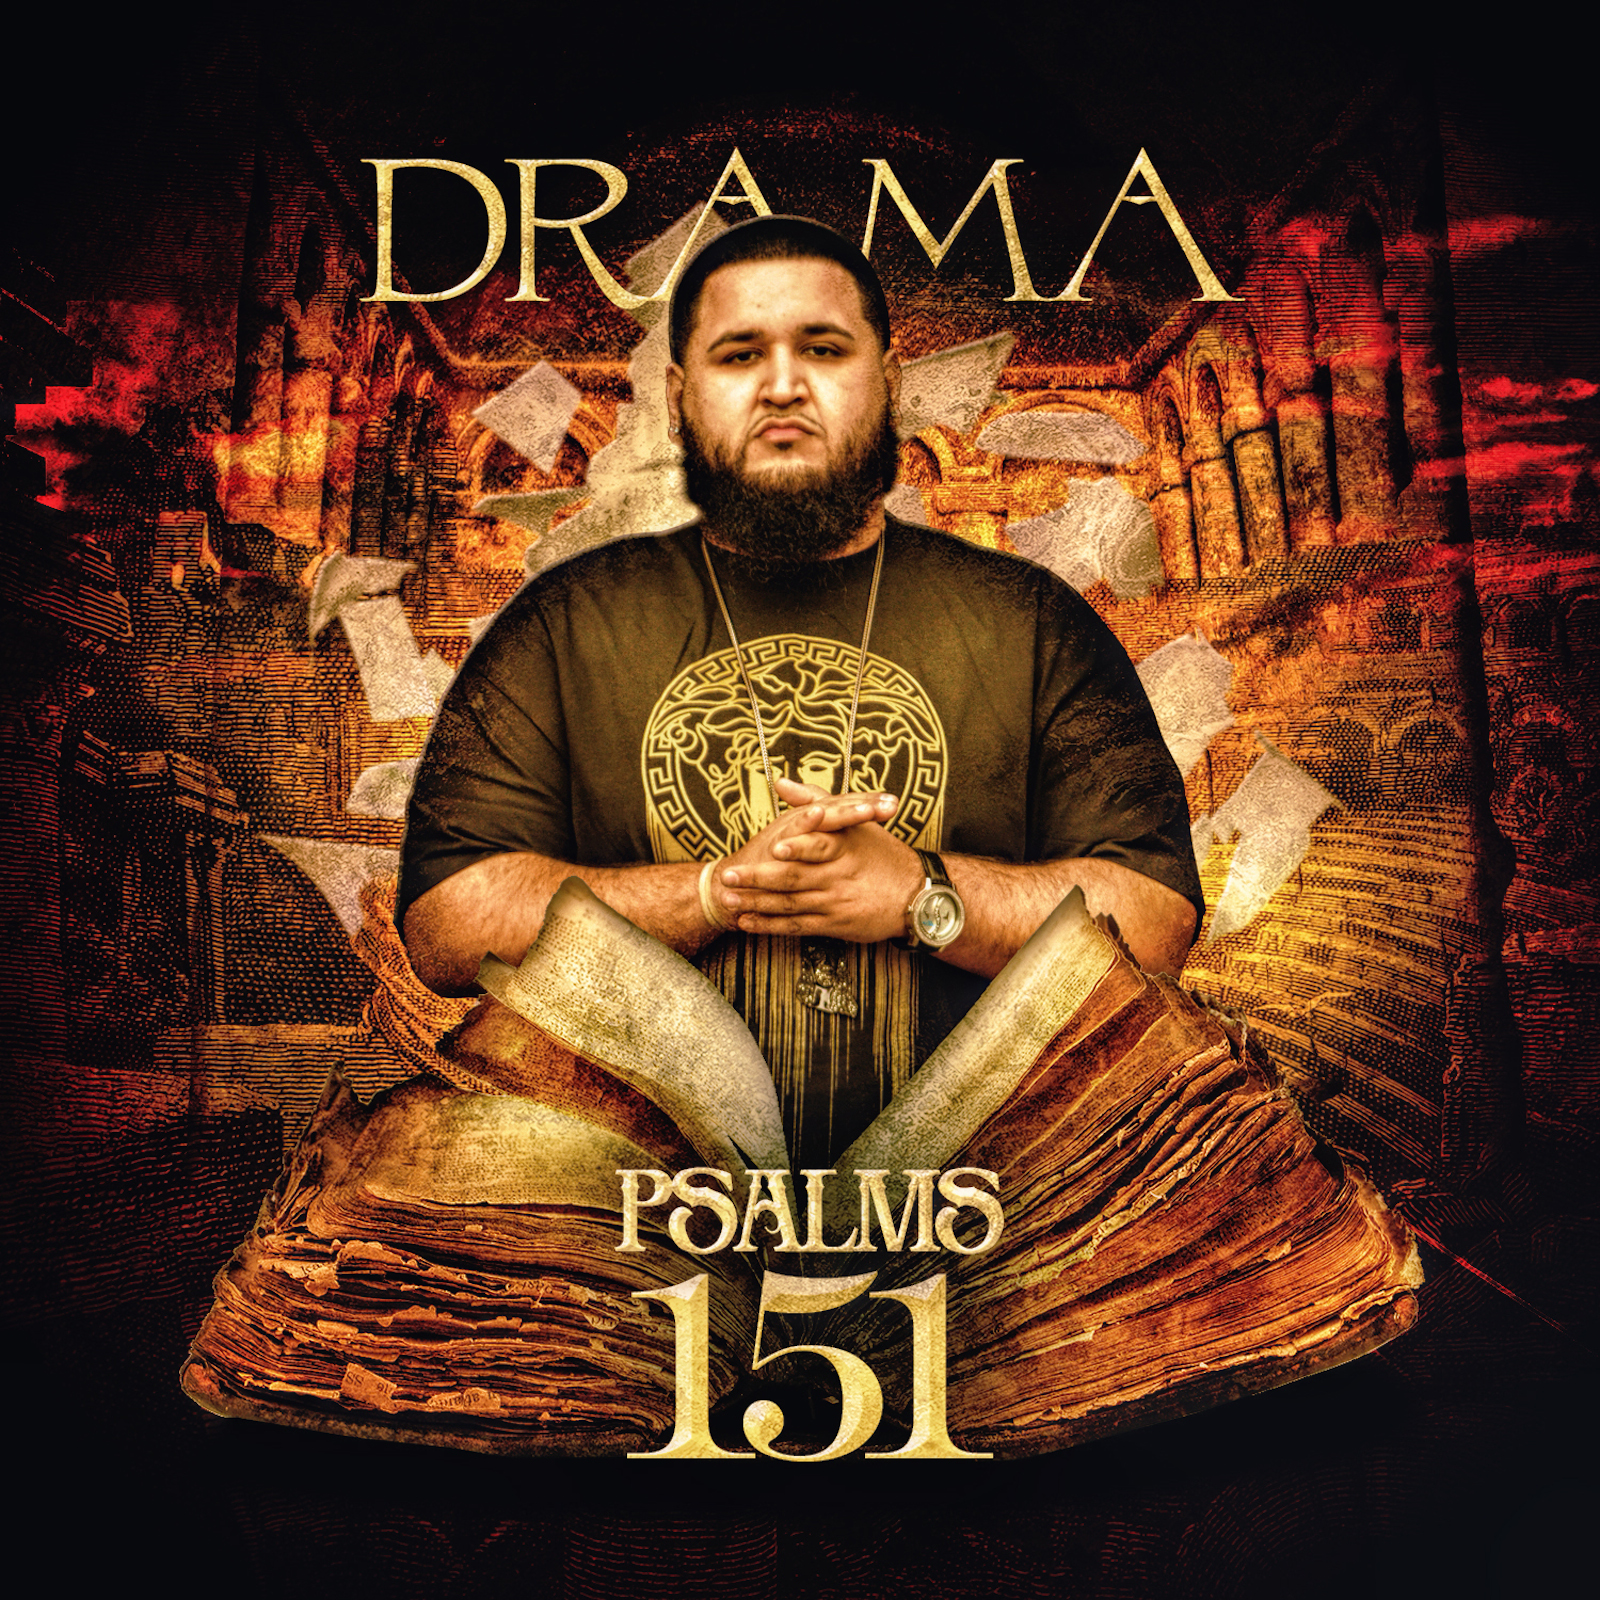 Psalms 151 cover